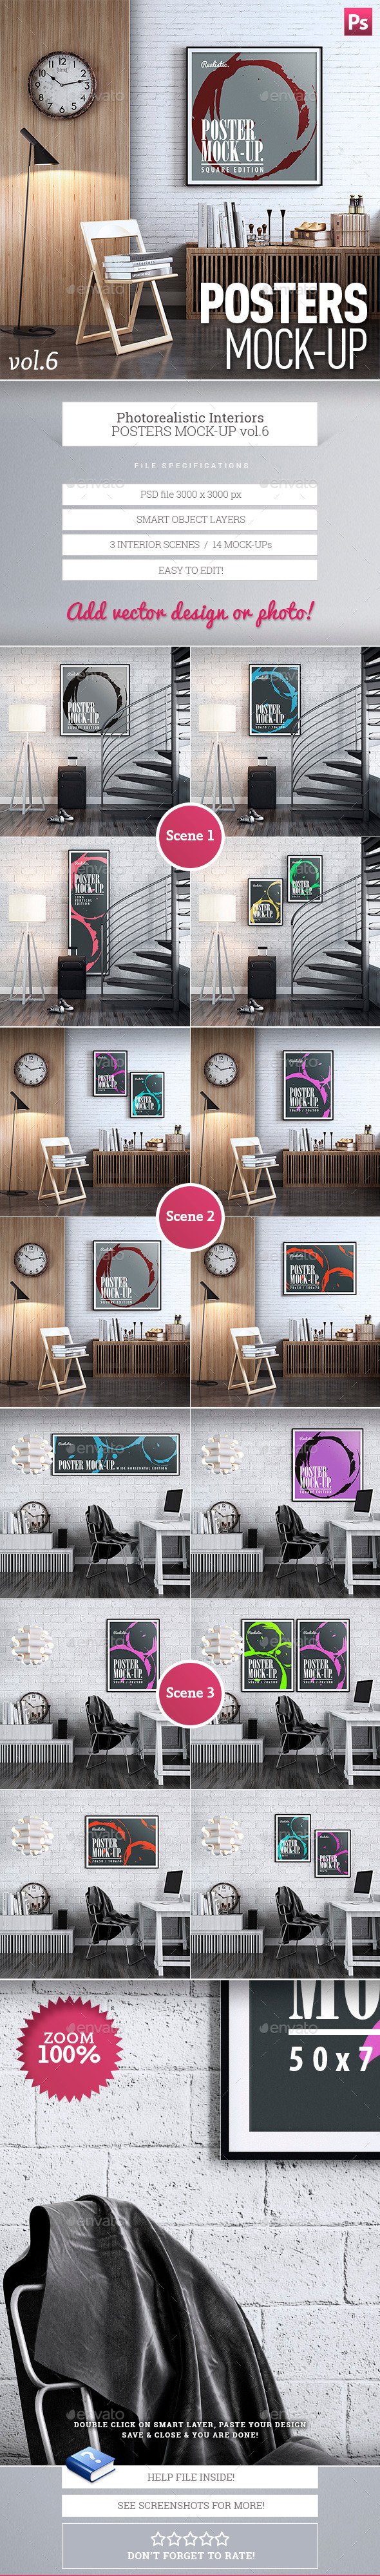 GraphicRiver Posters Interior Mock-Up vol.6 9840672